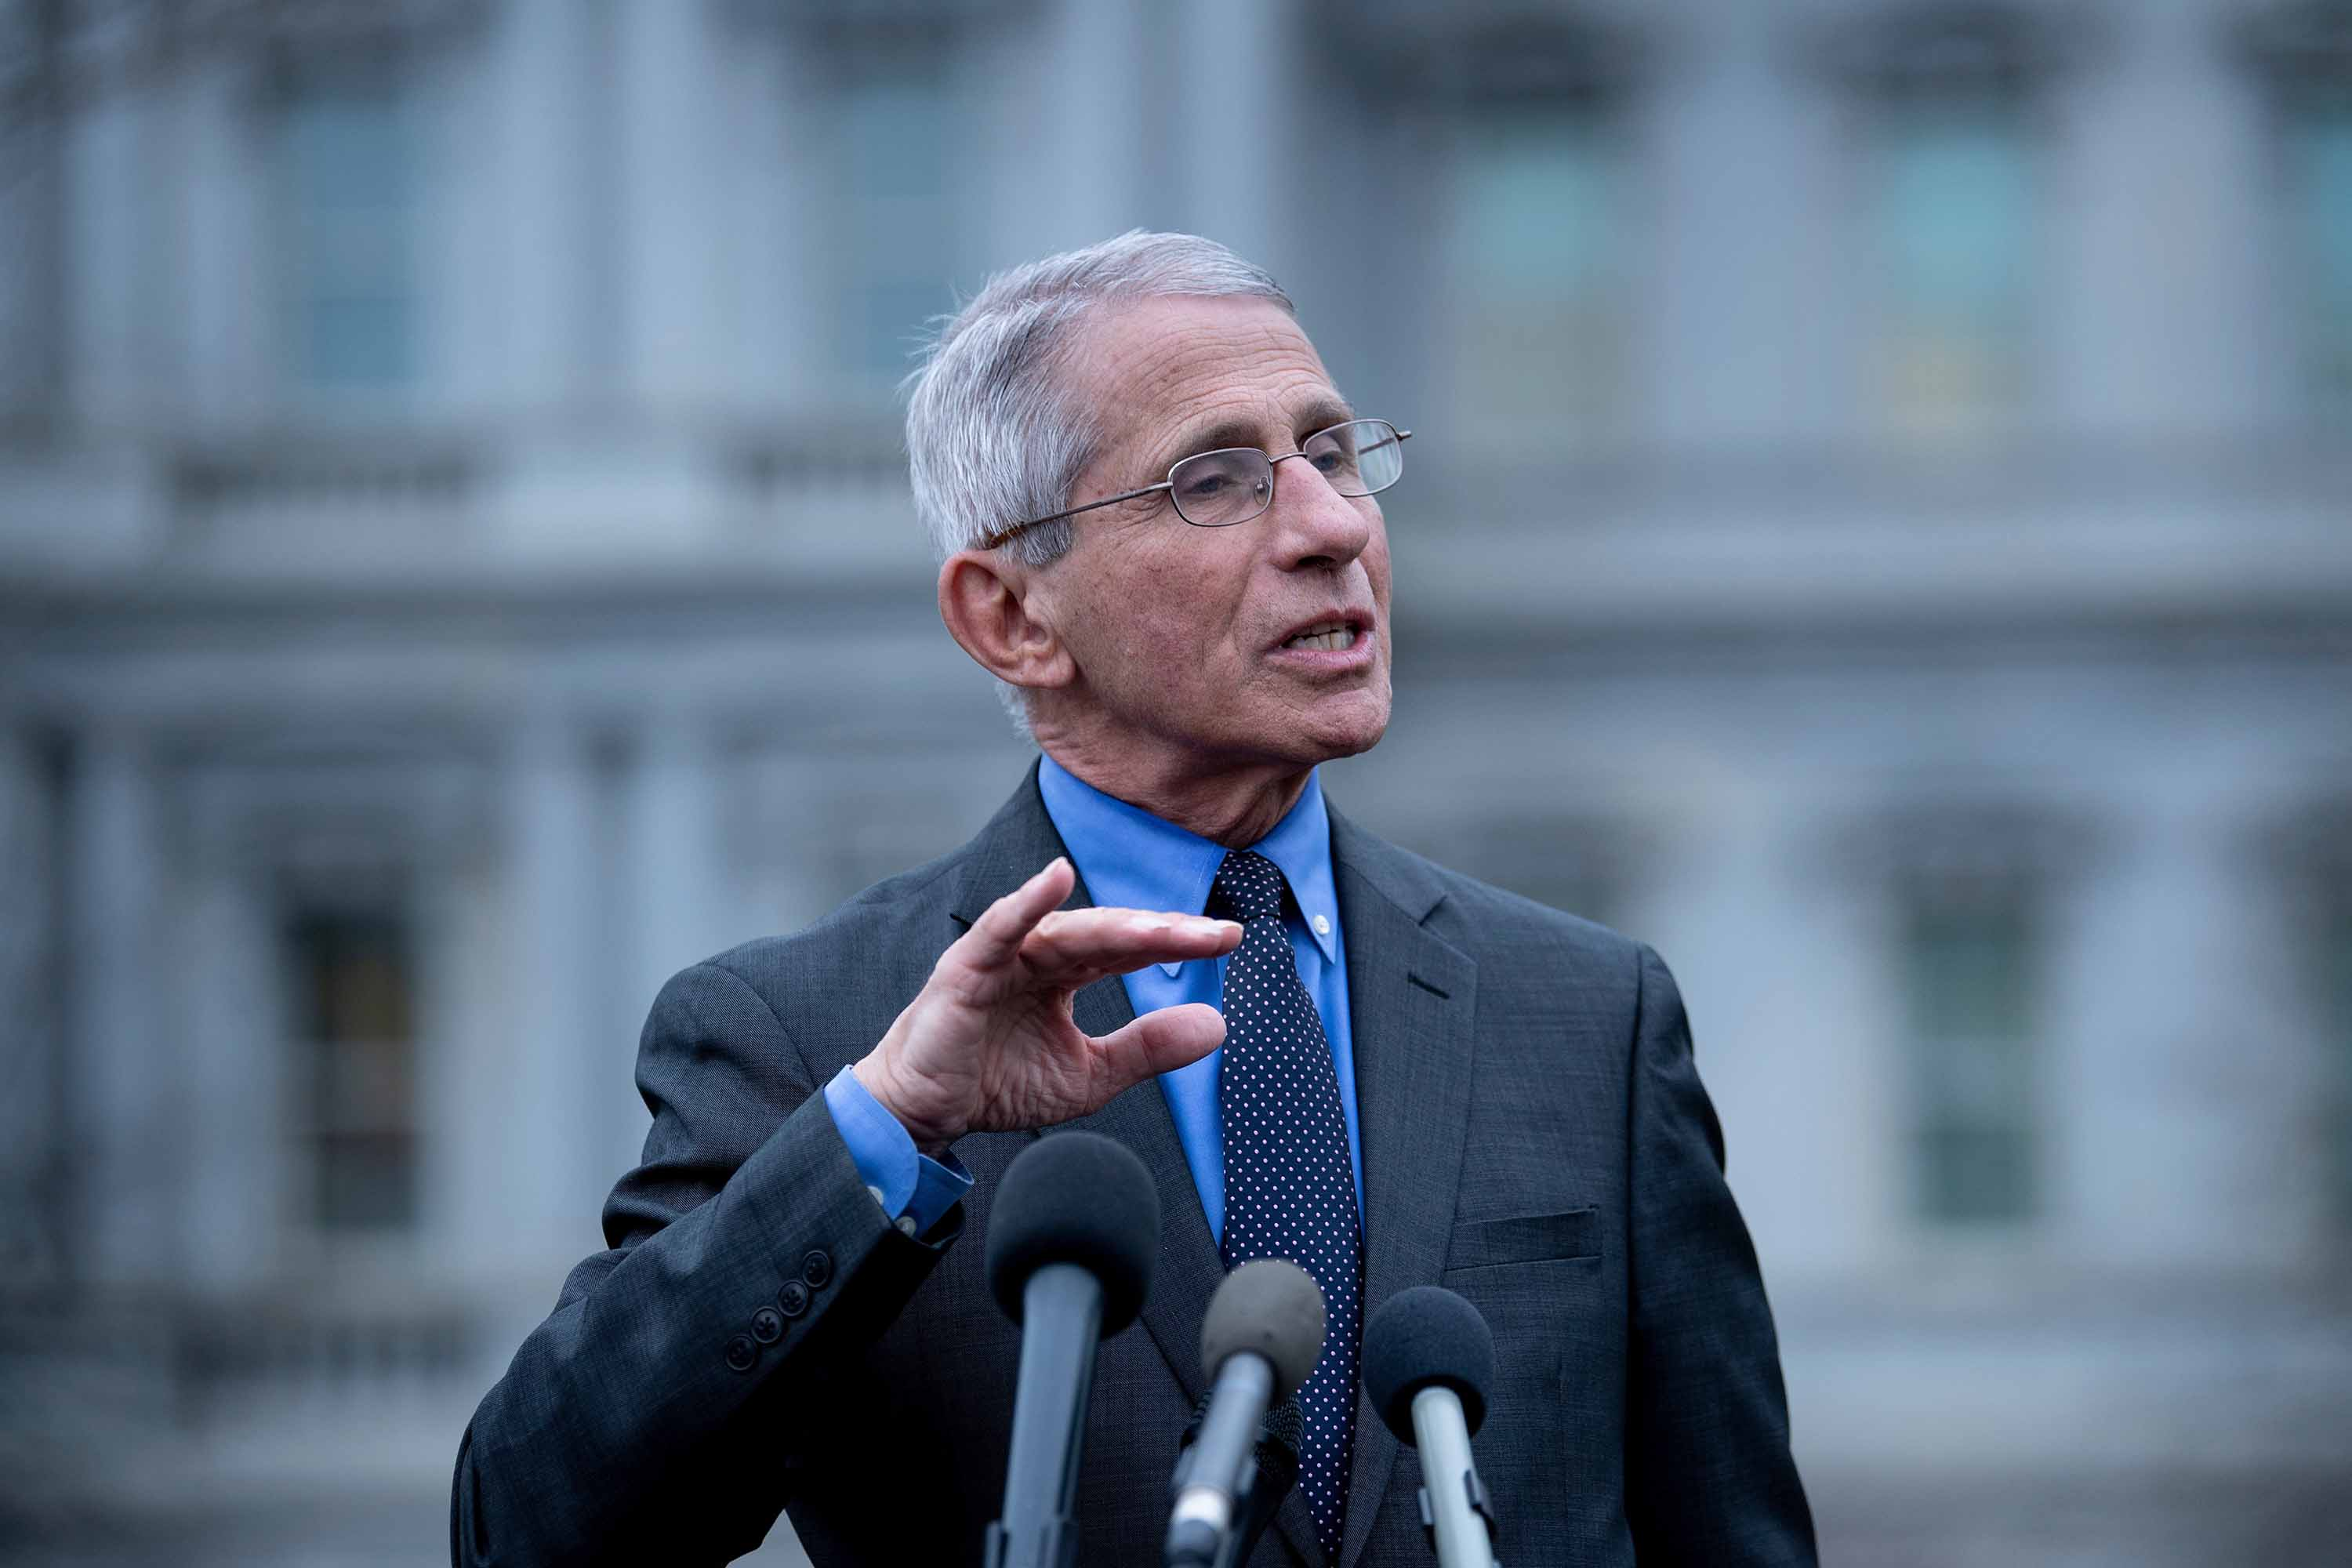 National Institute of Allergy and Infectious Diseases Director Dr. Anthony Fauci speaks to the press outside the White House on March 12.